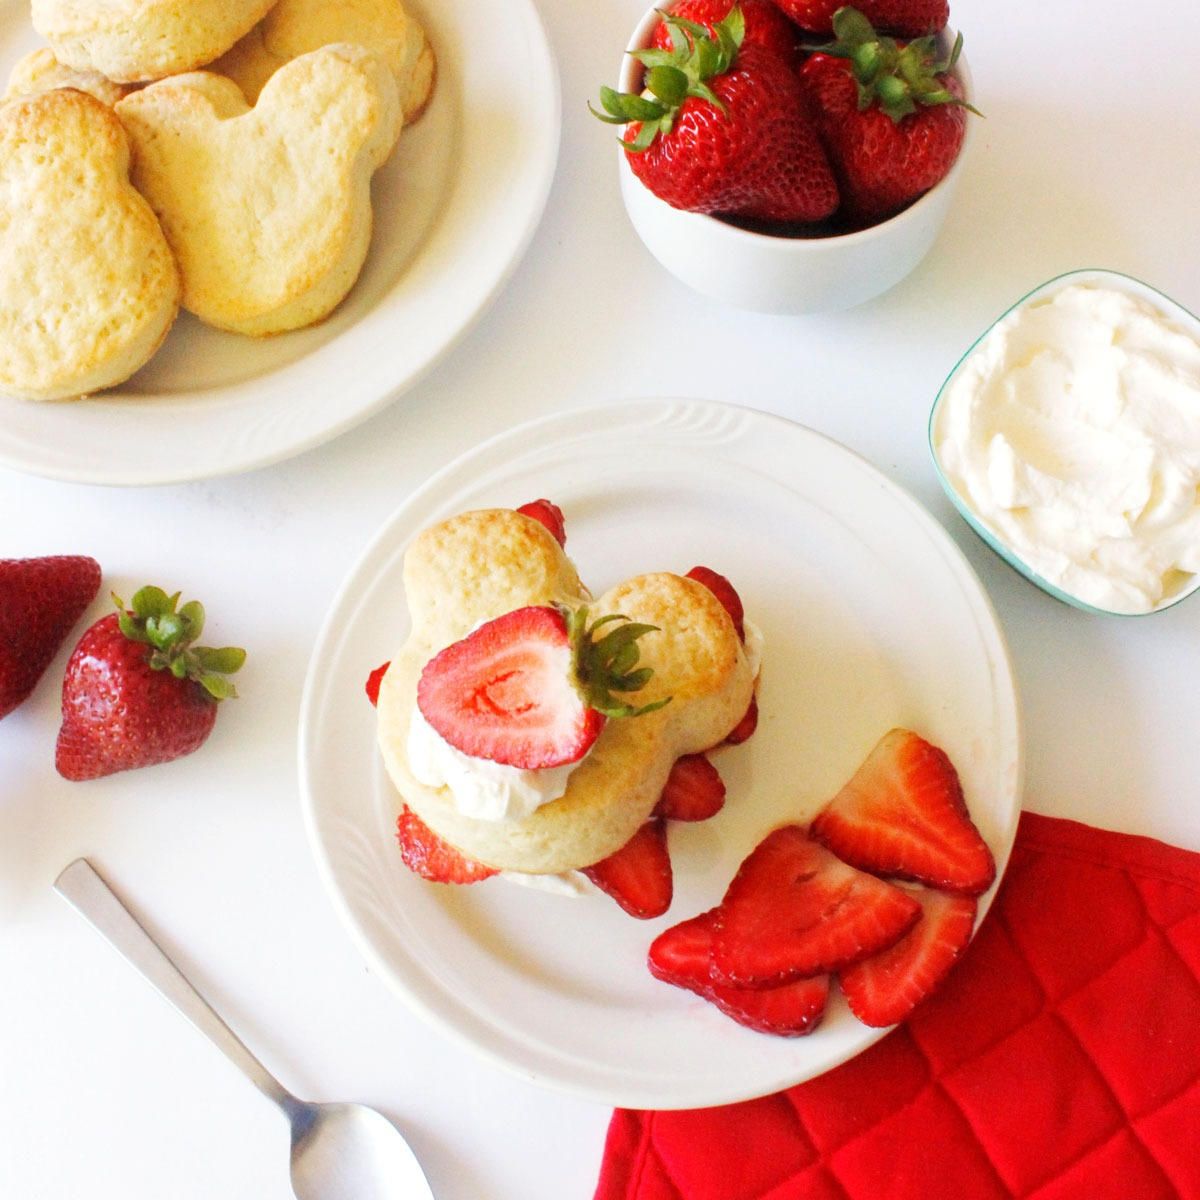 Mickey Strawberry Shortcake Recipe! Make your own! #DisneyFamily 1